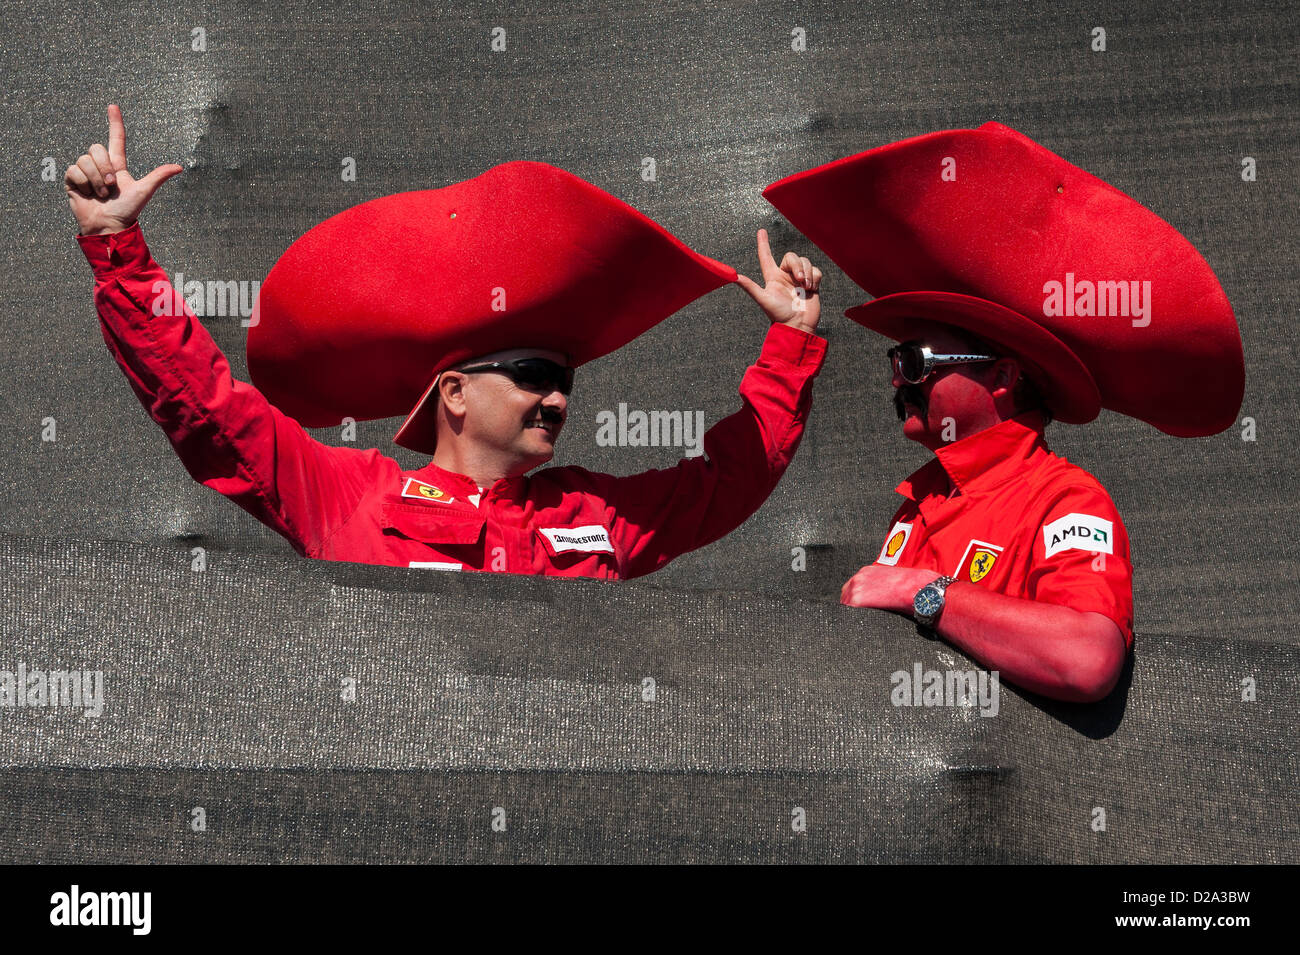 Two enthusiastic Texan fans of the Ferrari Formula 1 racing team sporting enormous, red cowboy hats and face paint. - Stock Image